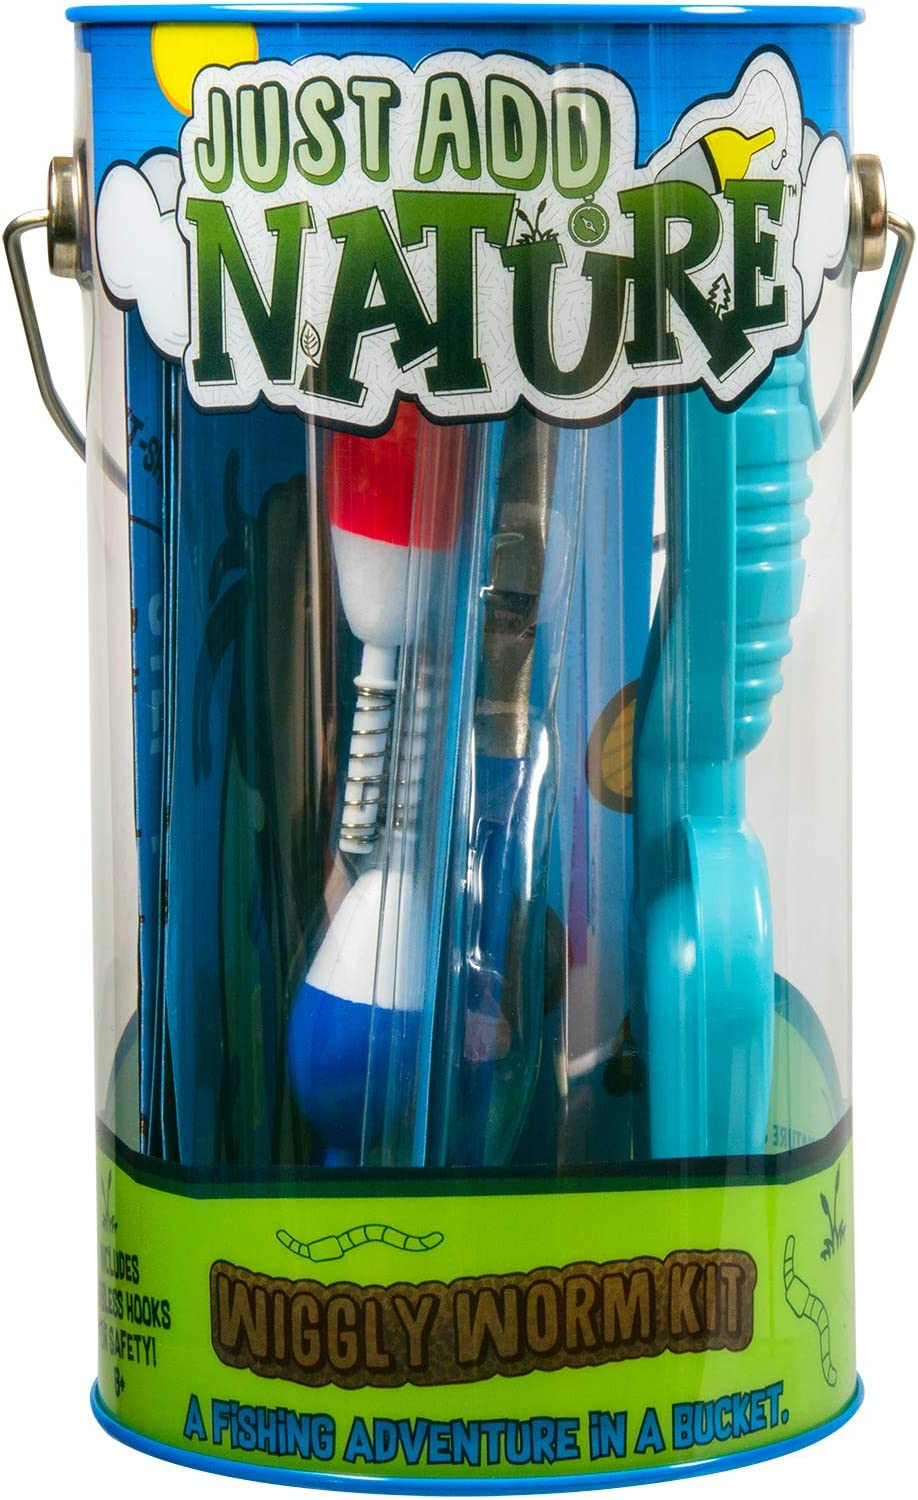 Just Add Nature Fishing Adventure in a Bucket Beginner Fishing Kit for Kids - Teaches Kids How to Fish - Includes Hooks, Tools and Accessories